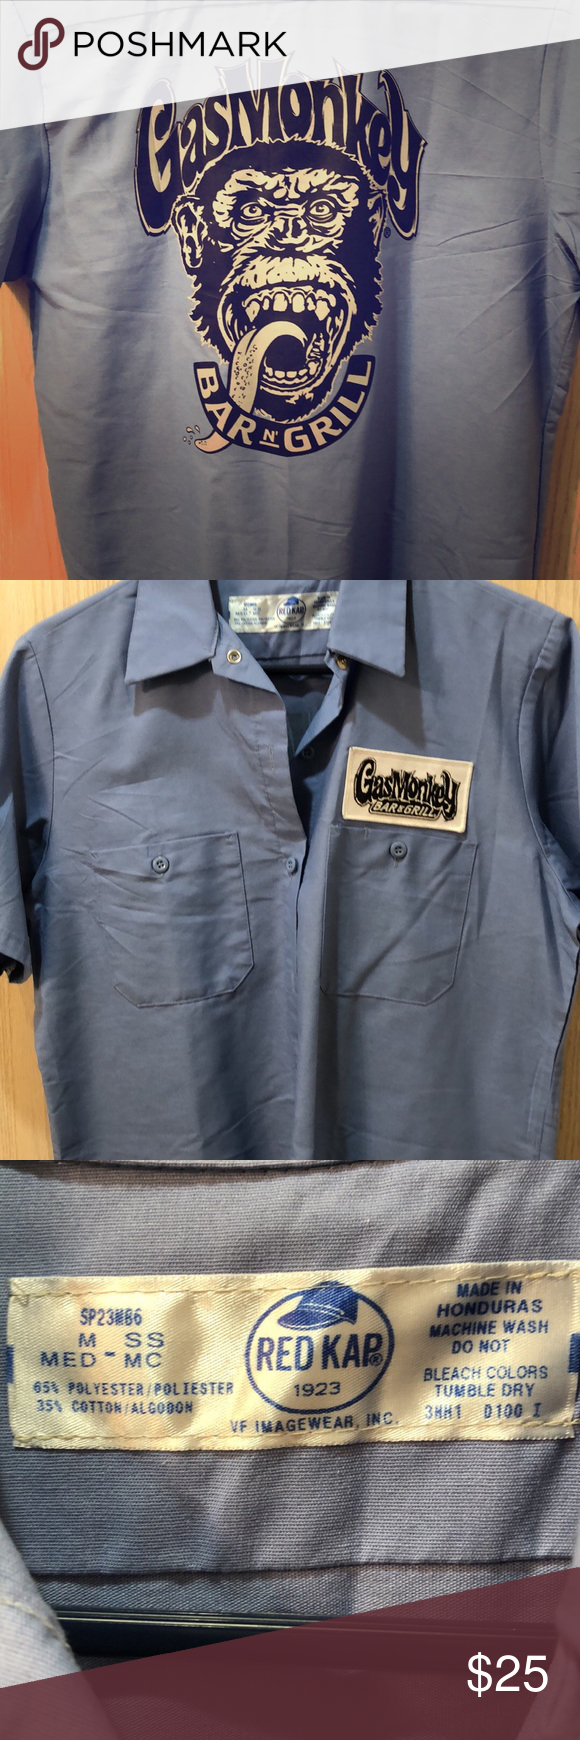 Gas Monkey Garage New without tags  Gas Monkey Garage unisex button up.  Bought at Gas Monkey Garage in Dallas, Texas. Tops #gasmonkeygarage